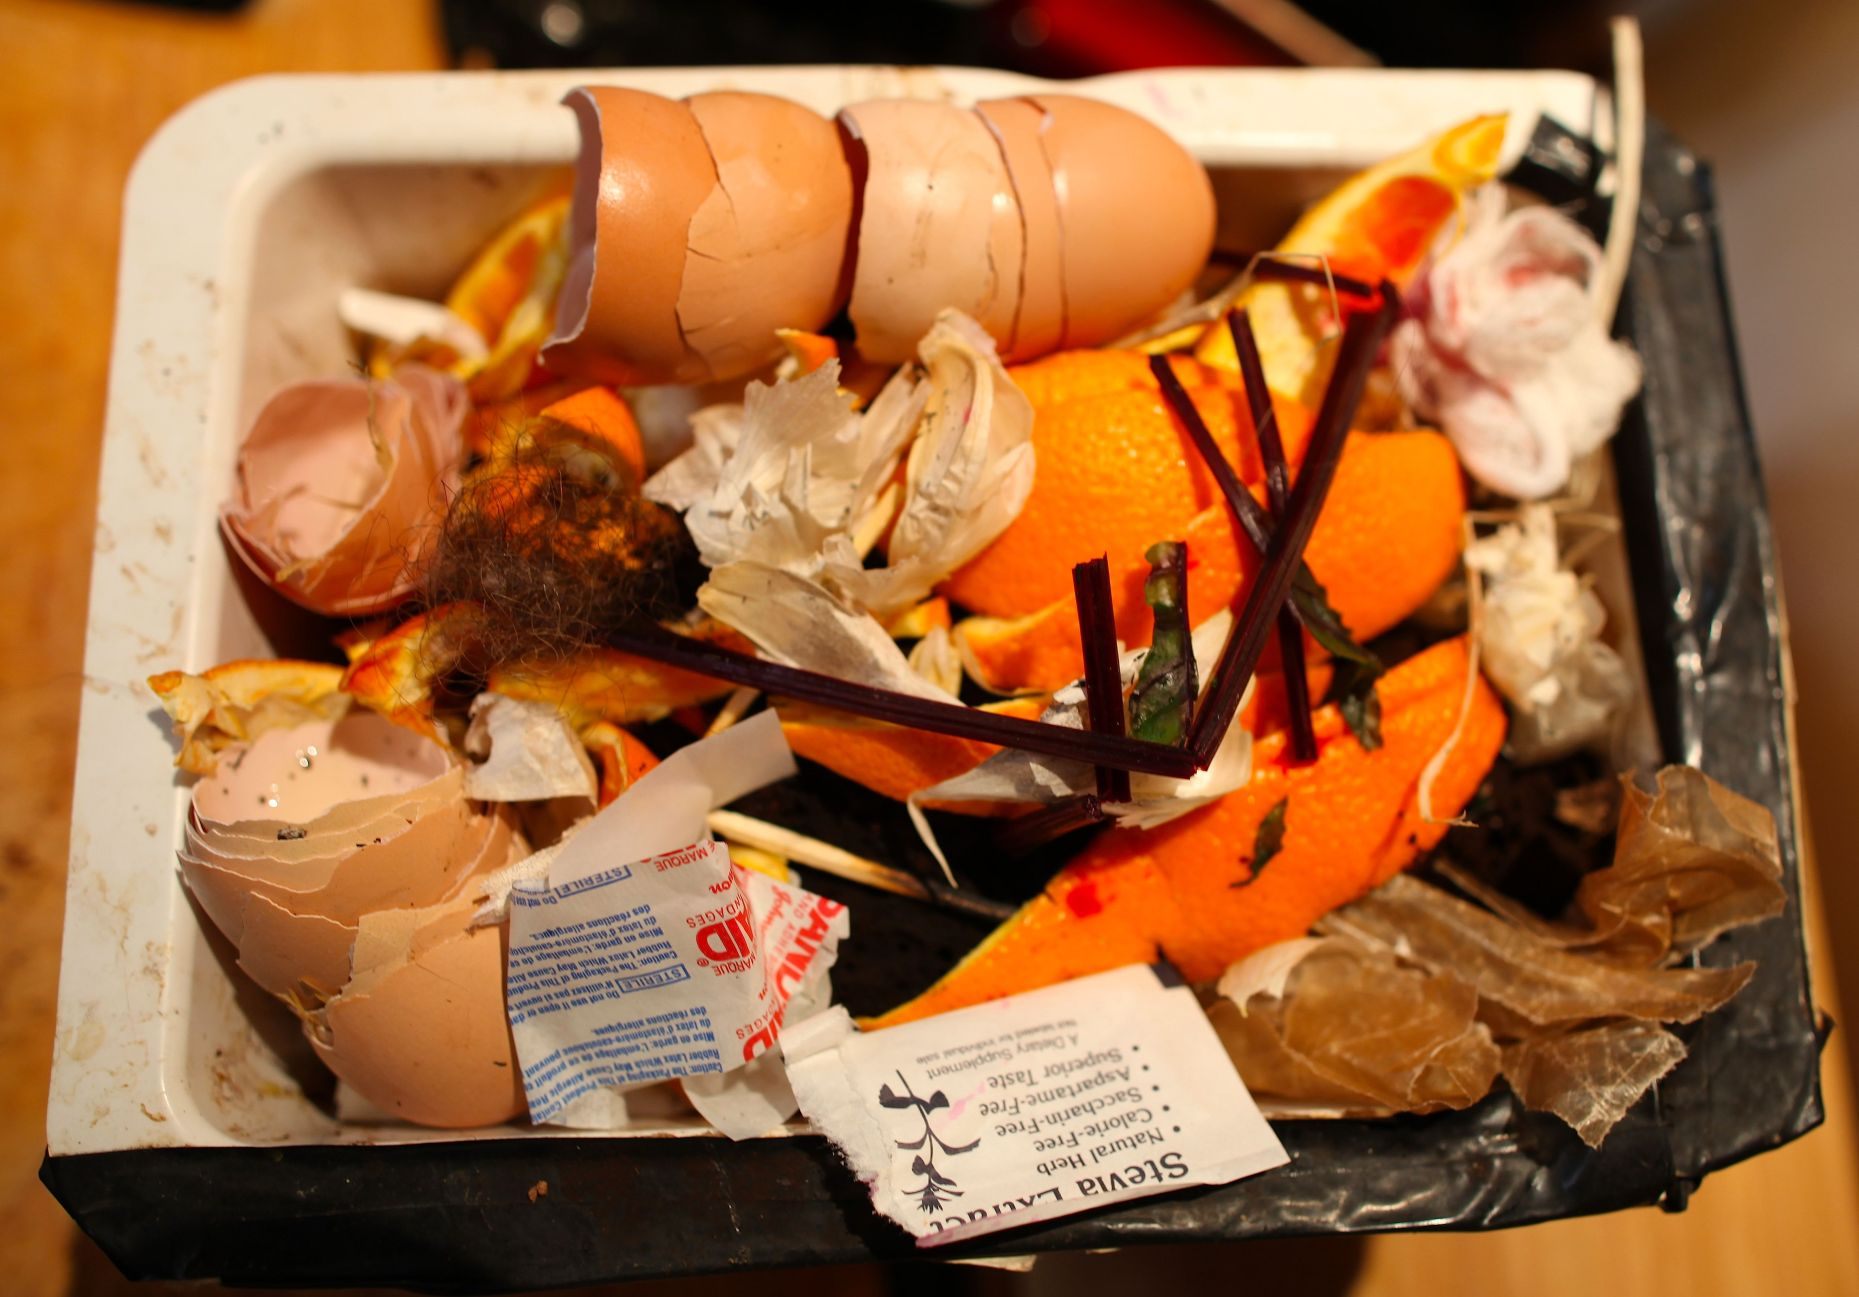 What's in Our Compost? Paper scraps, hair, pet fur, wax paper, egg shells, cotton fabrics, string....